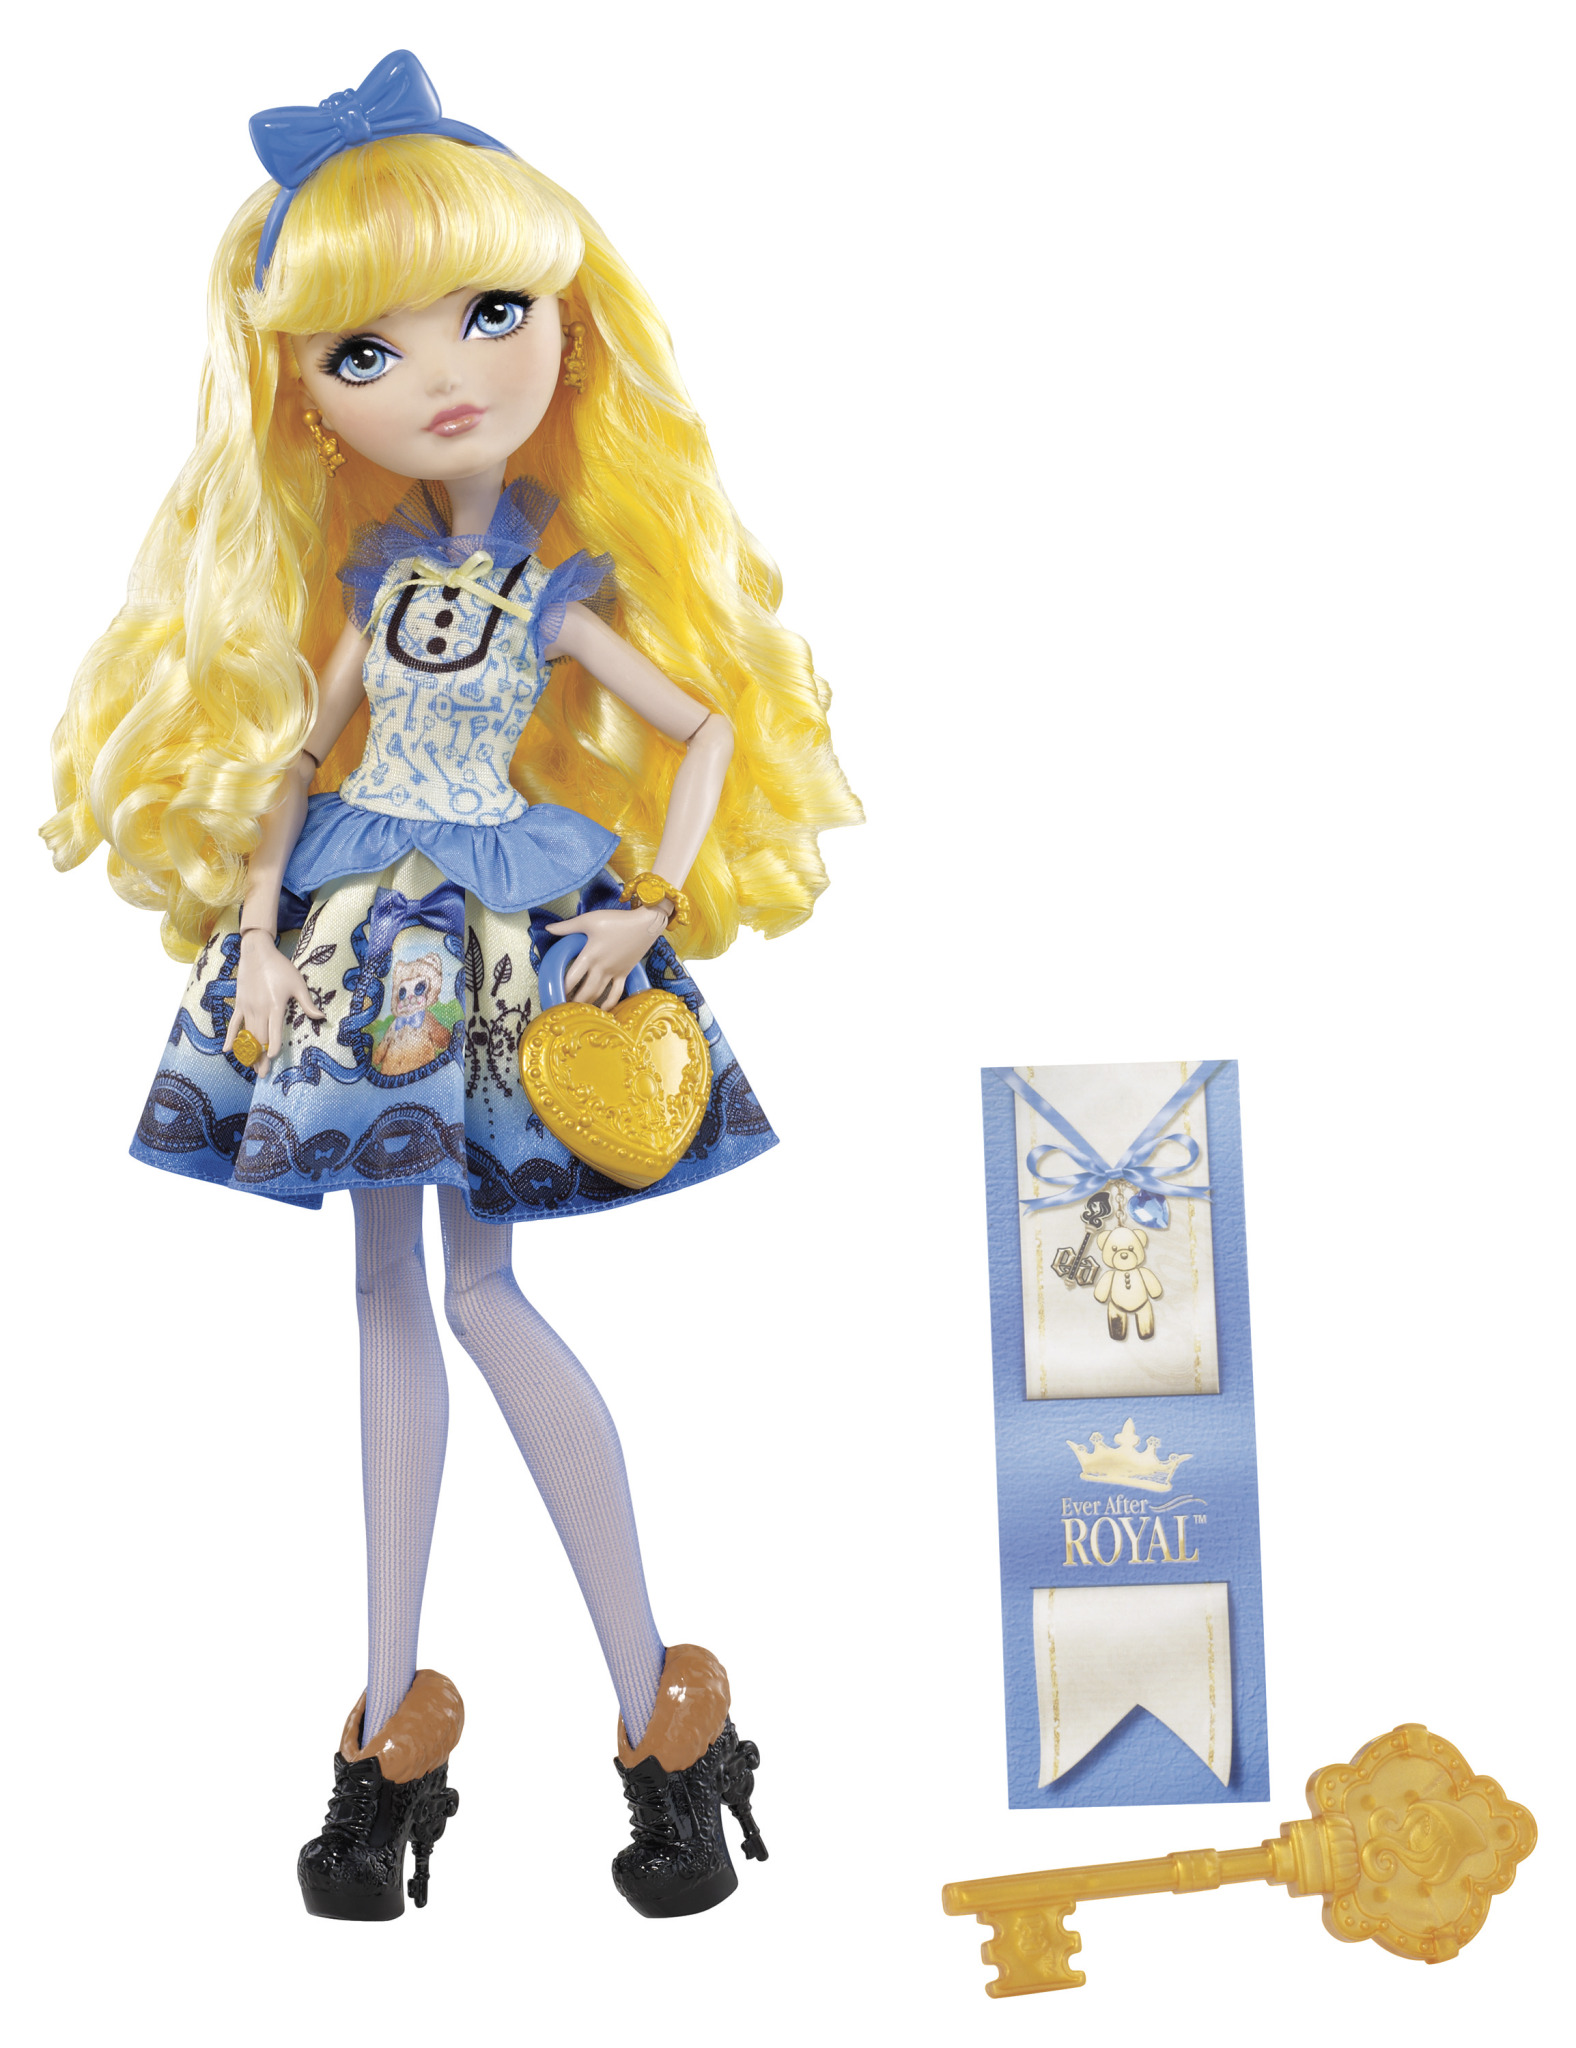 Ever After High Toys R Us : Introducing ever after high dolls and their official